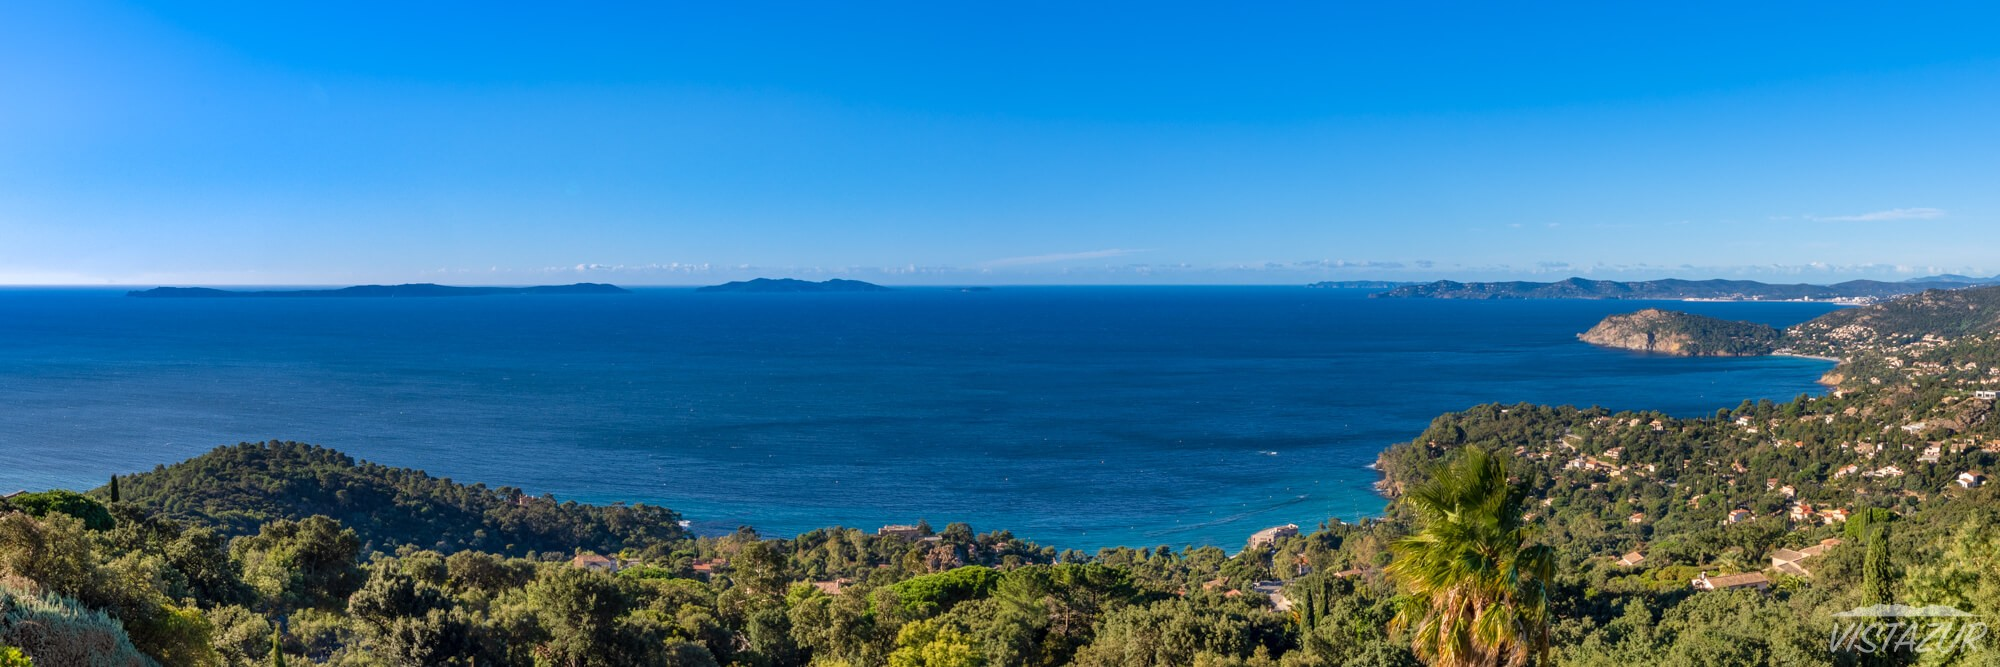 "Vistazur villa ""Iles d'Or"" view, Azure Coast, France"